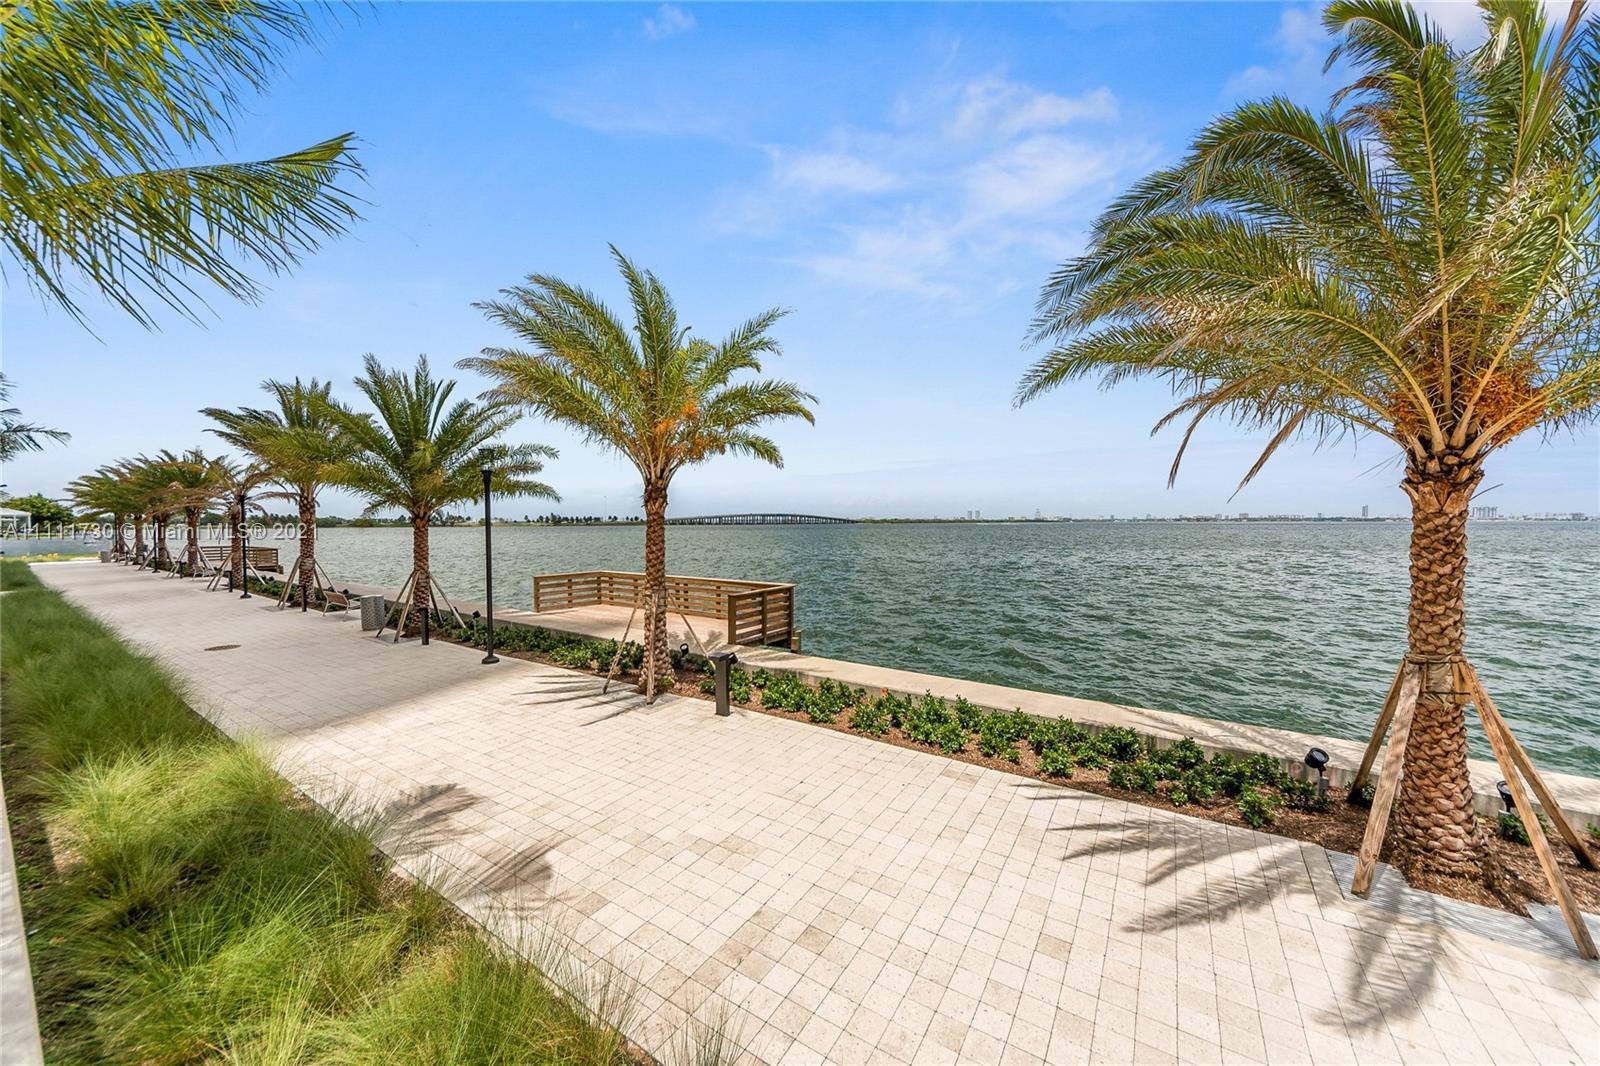 Spectacular 3 bedroom plus a den and 4 bath apartment in the 11th floor at amazing Biscayne Beach bu